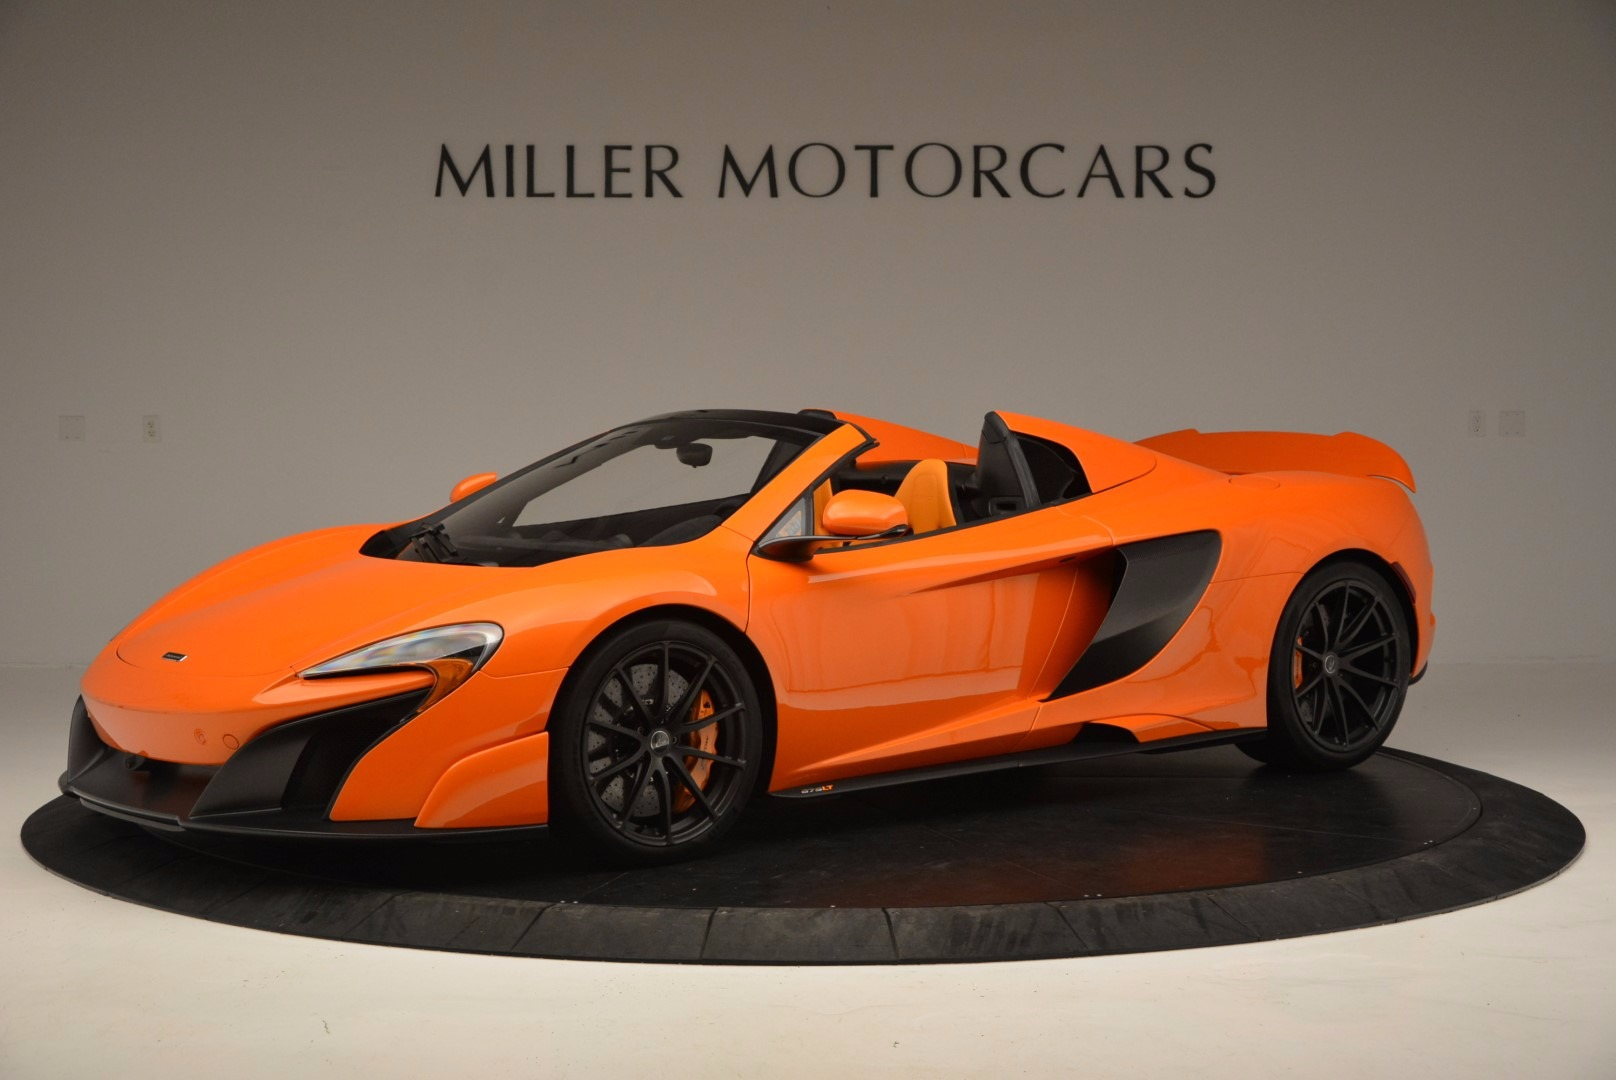 Used 2016 McLaren 675LT Spider Convertible for sale Sold at Bugatti of Greenwich in Greenwich CT 06830 1